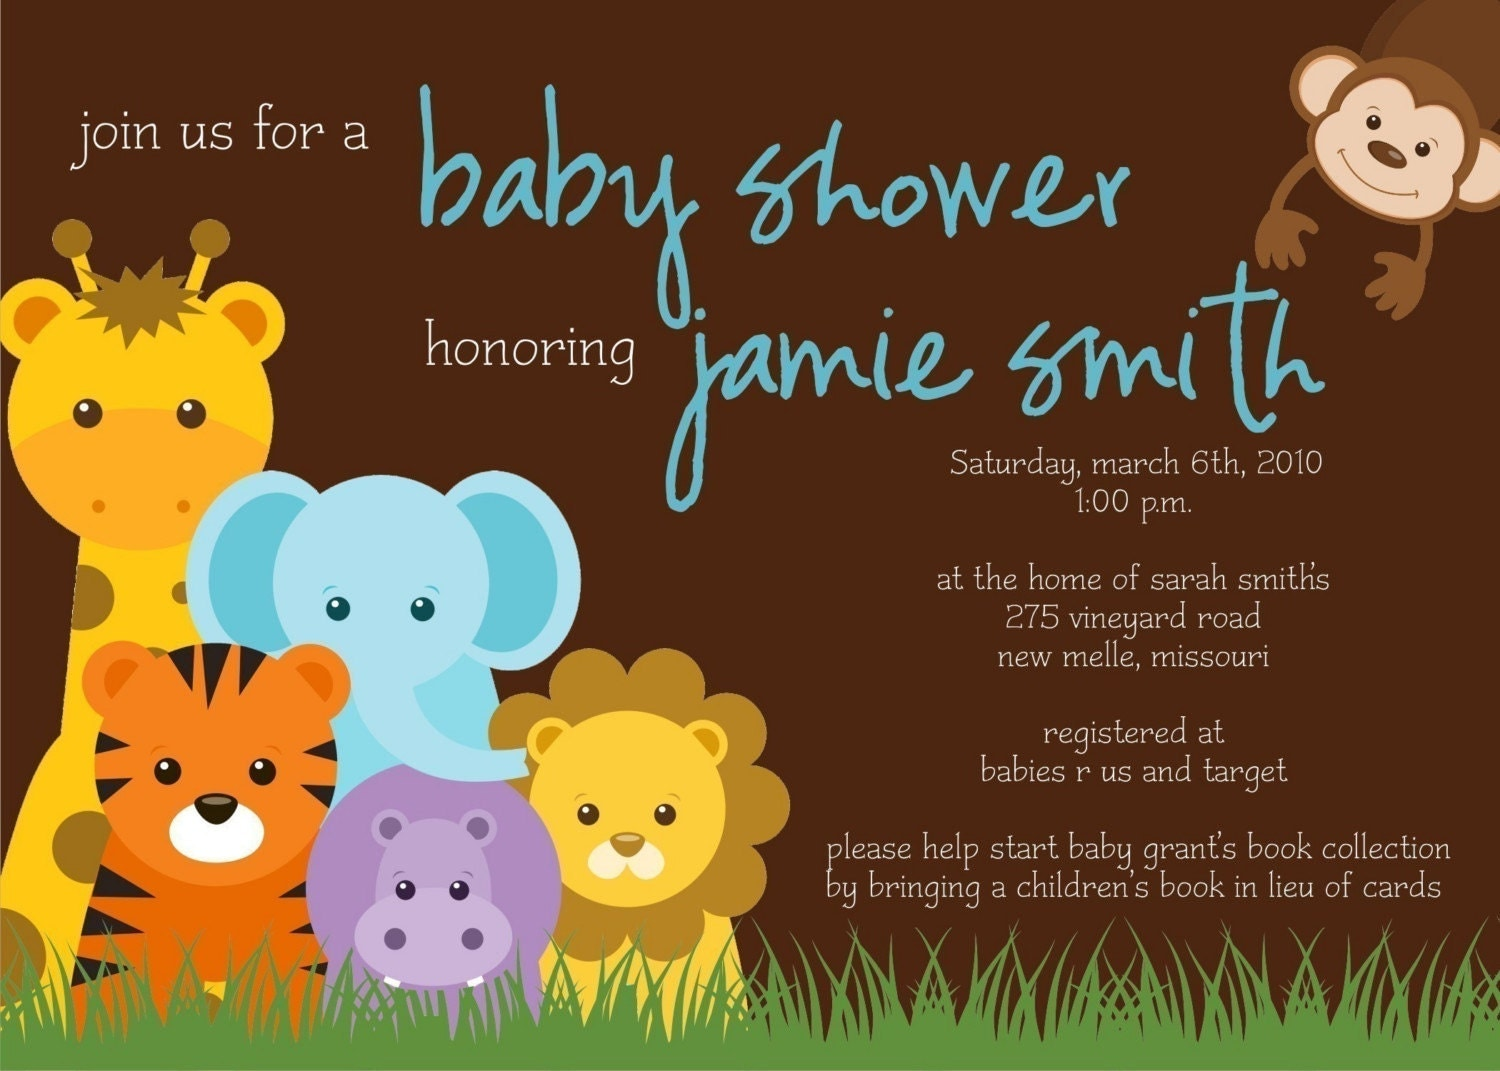 jungle theme baby shower invitation, Baby shower invitations